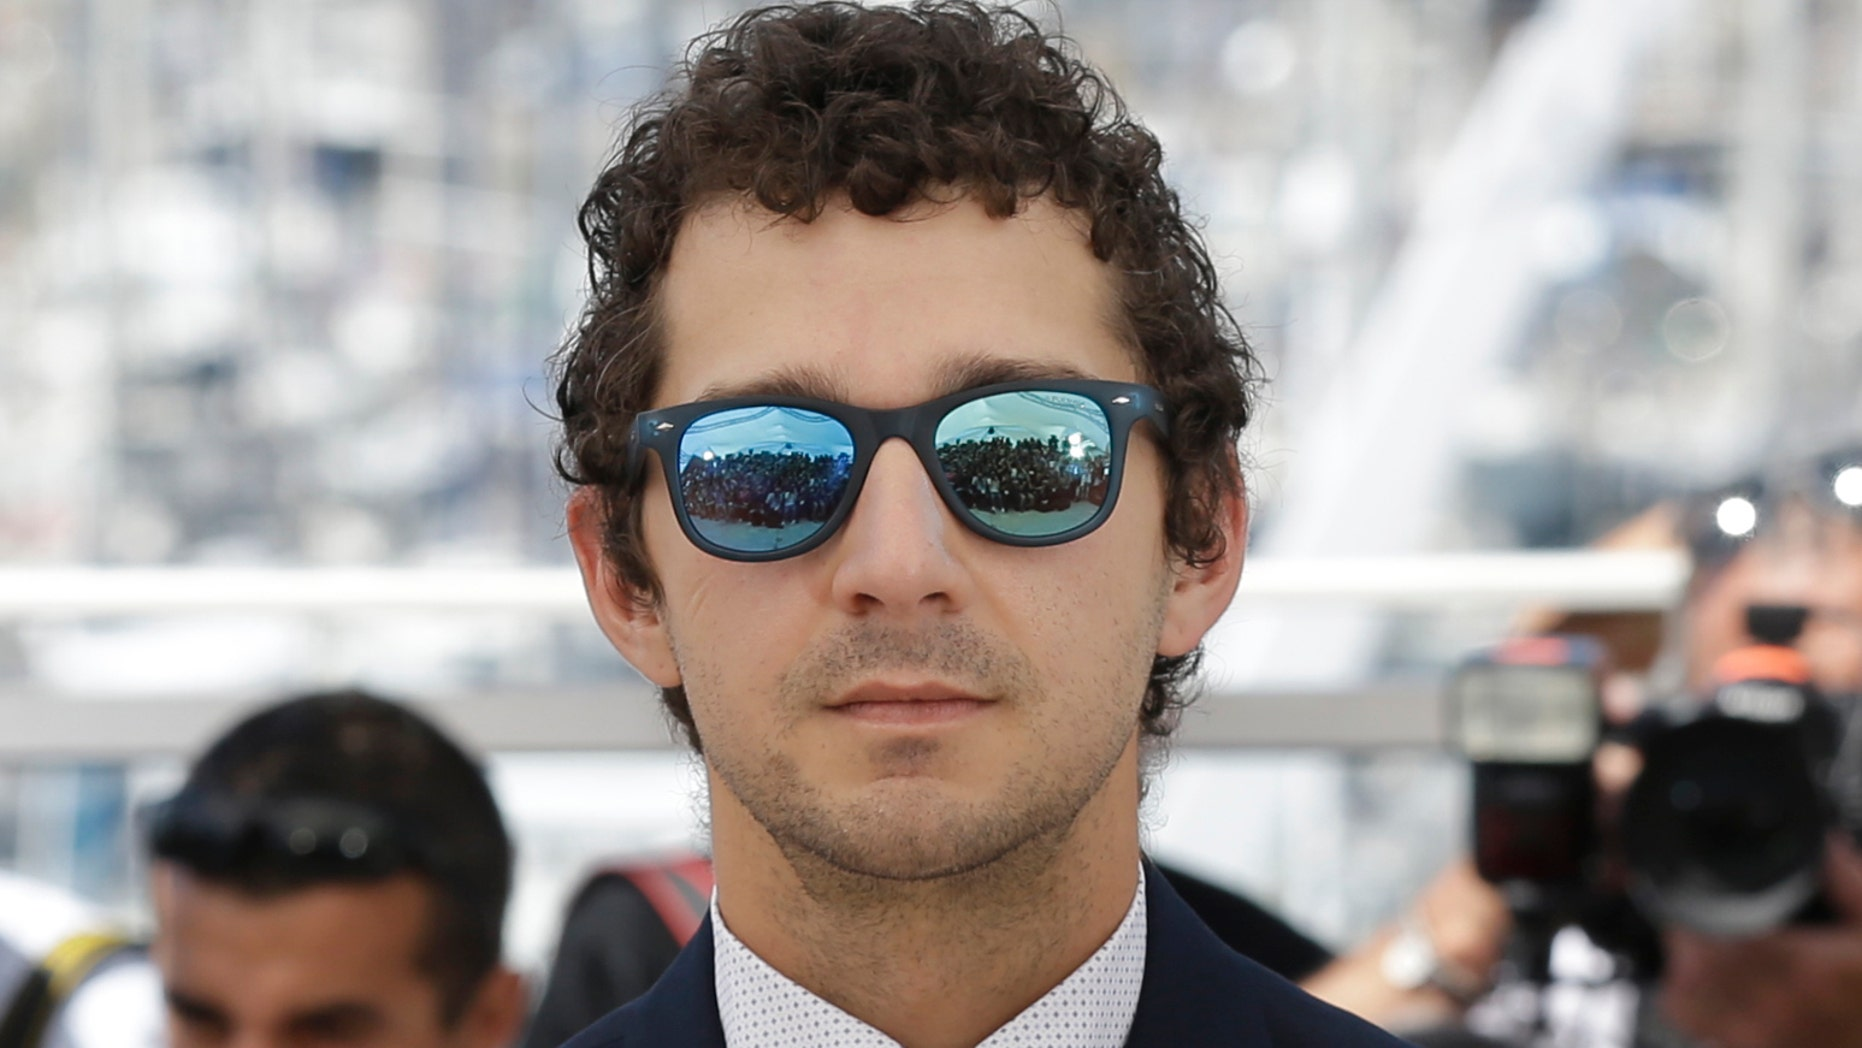 Shia Labeouf at the Cannes Film Festival